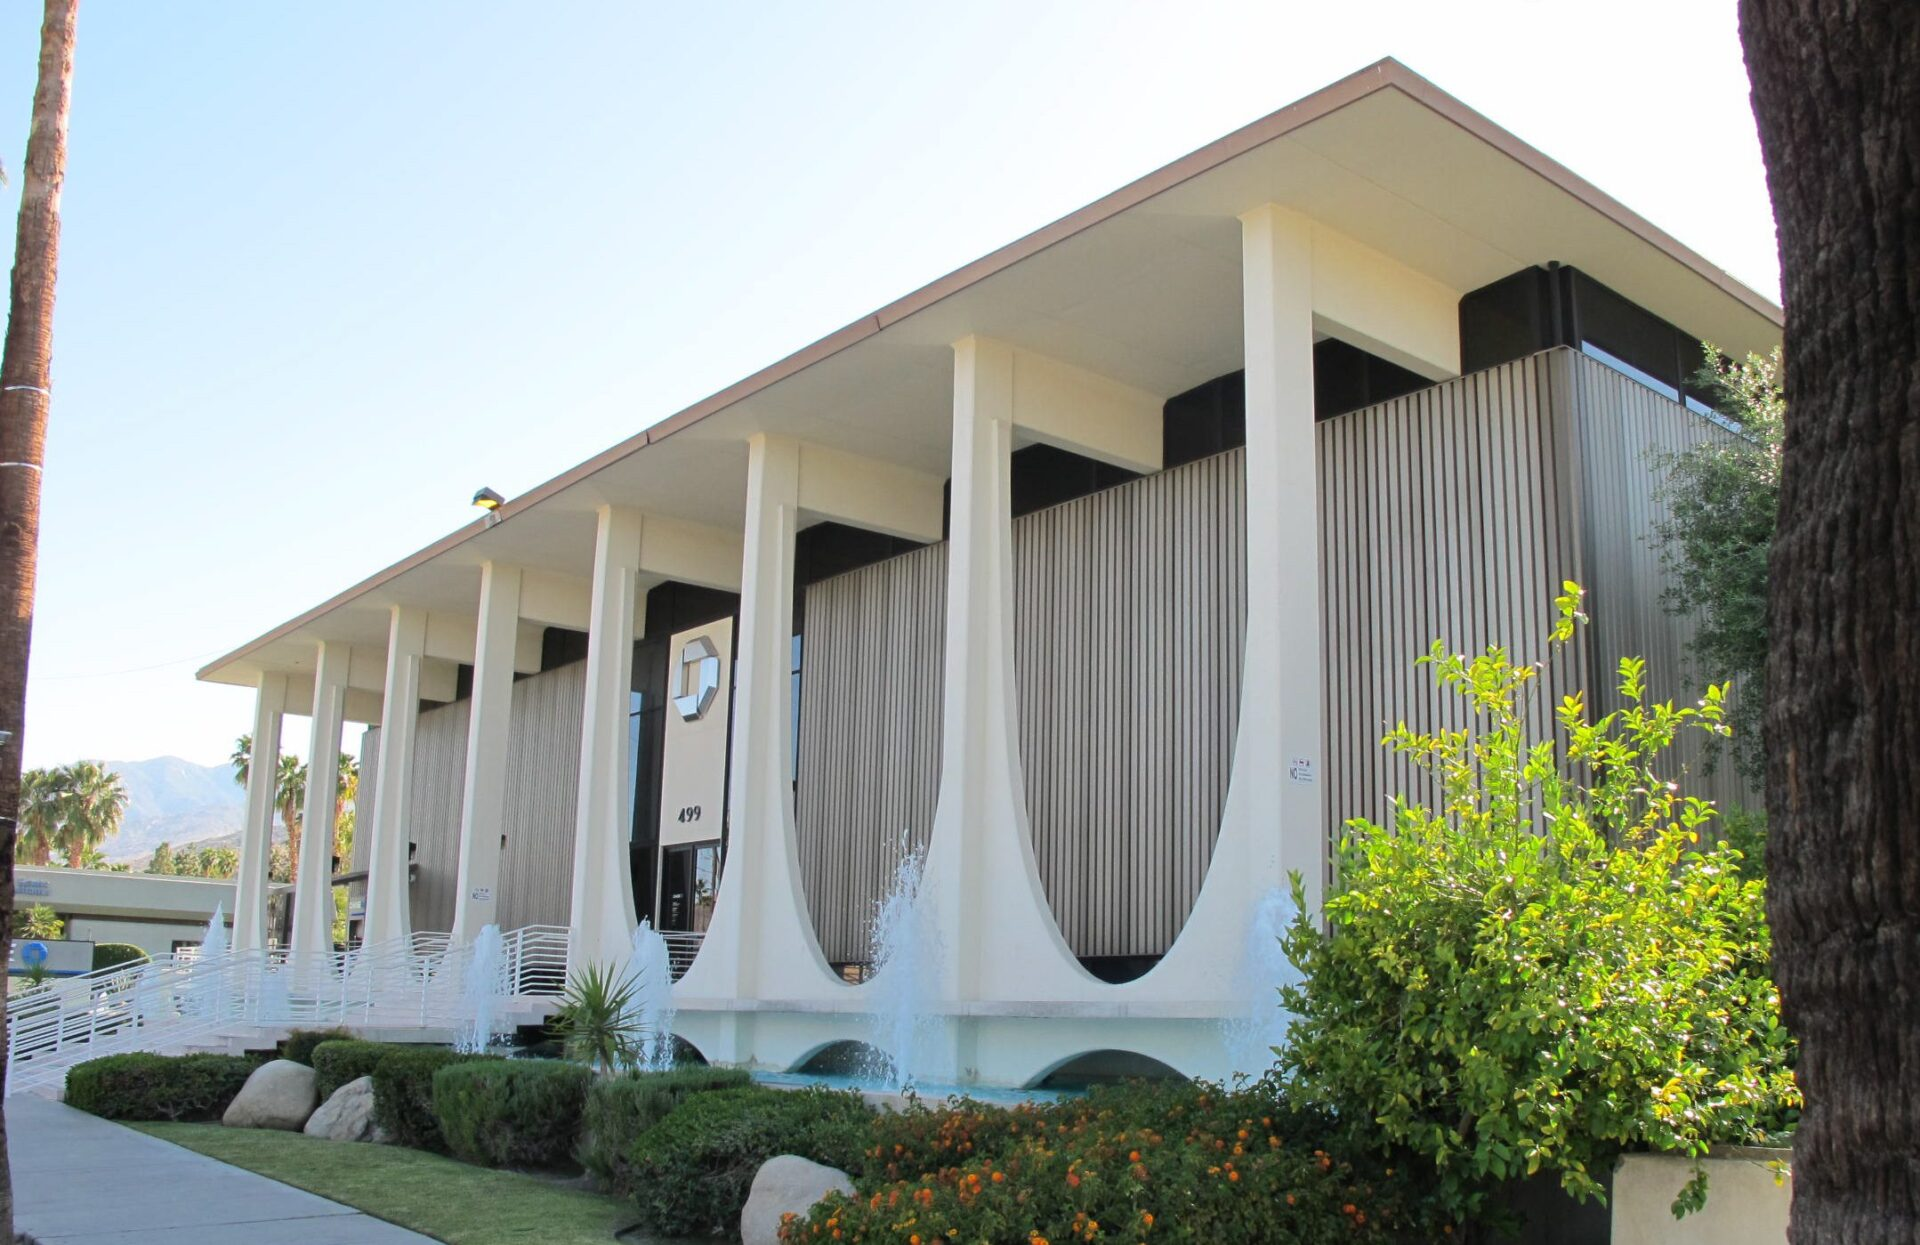 Chase Bank by architect E. Stewart Williams in palm springs